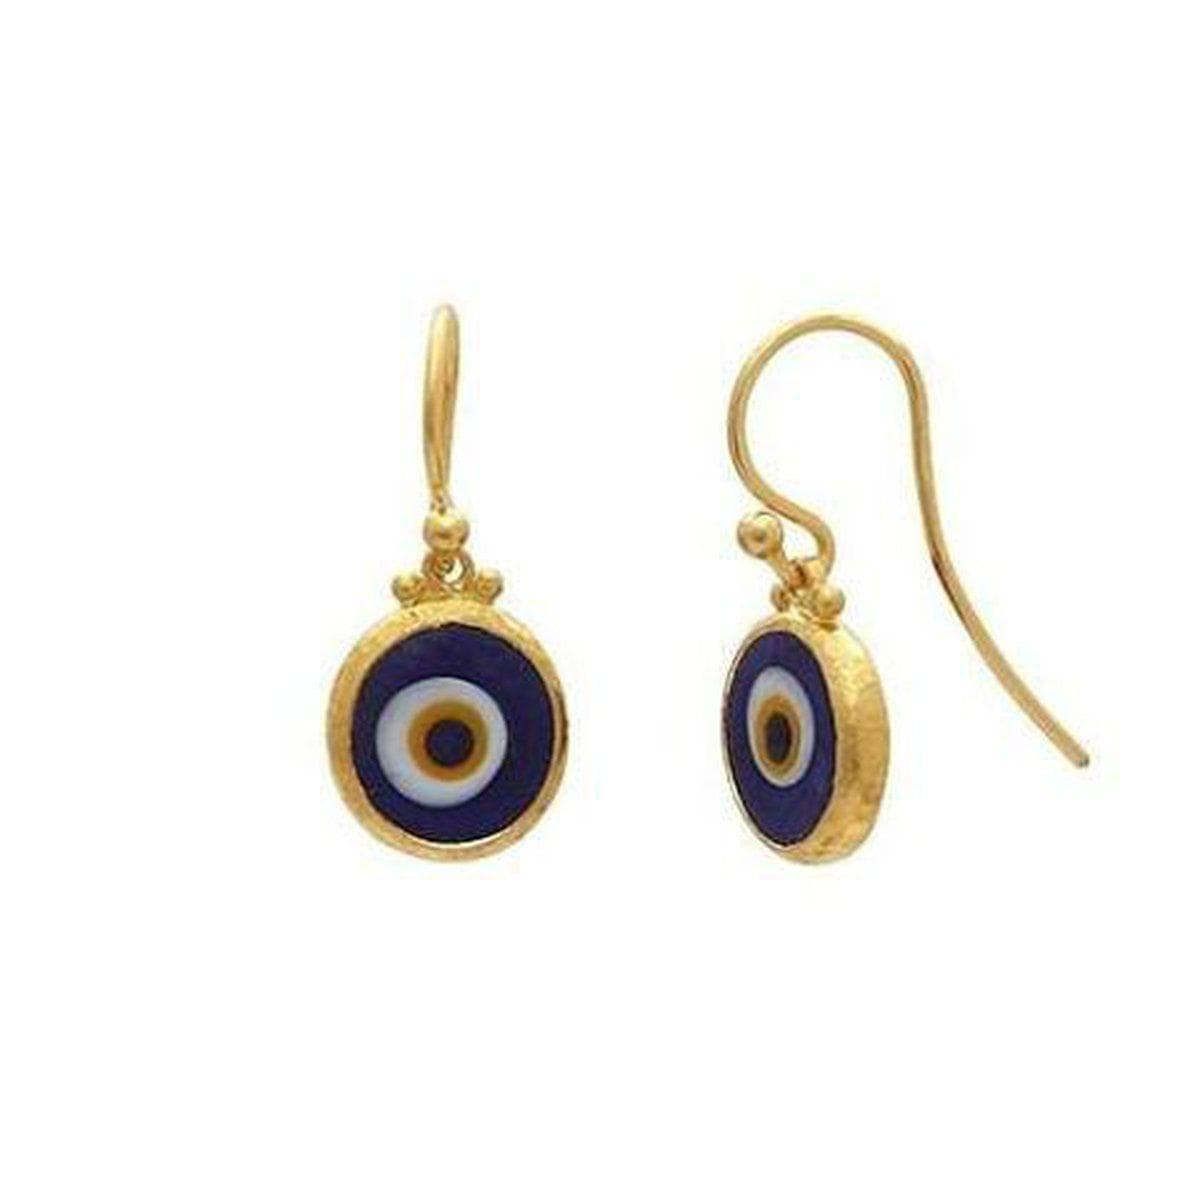 Juju 24K Gold Evil Eye Earrings - EHSG-EED10-SD